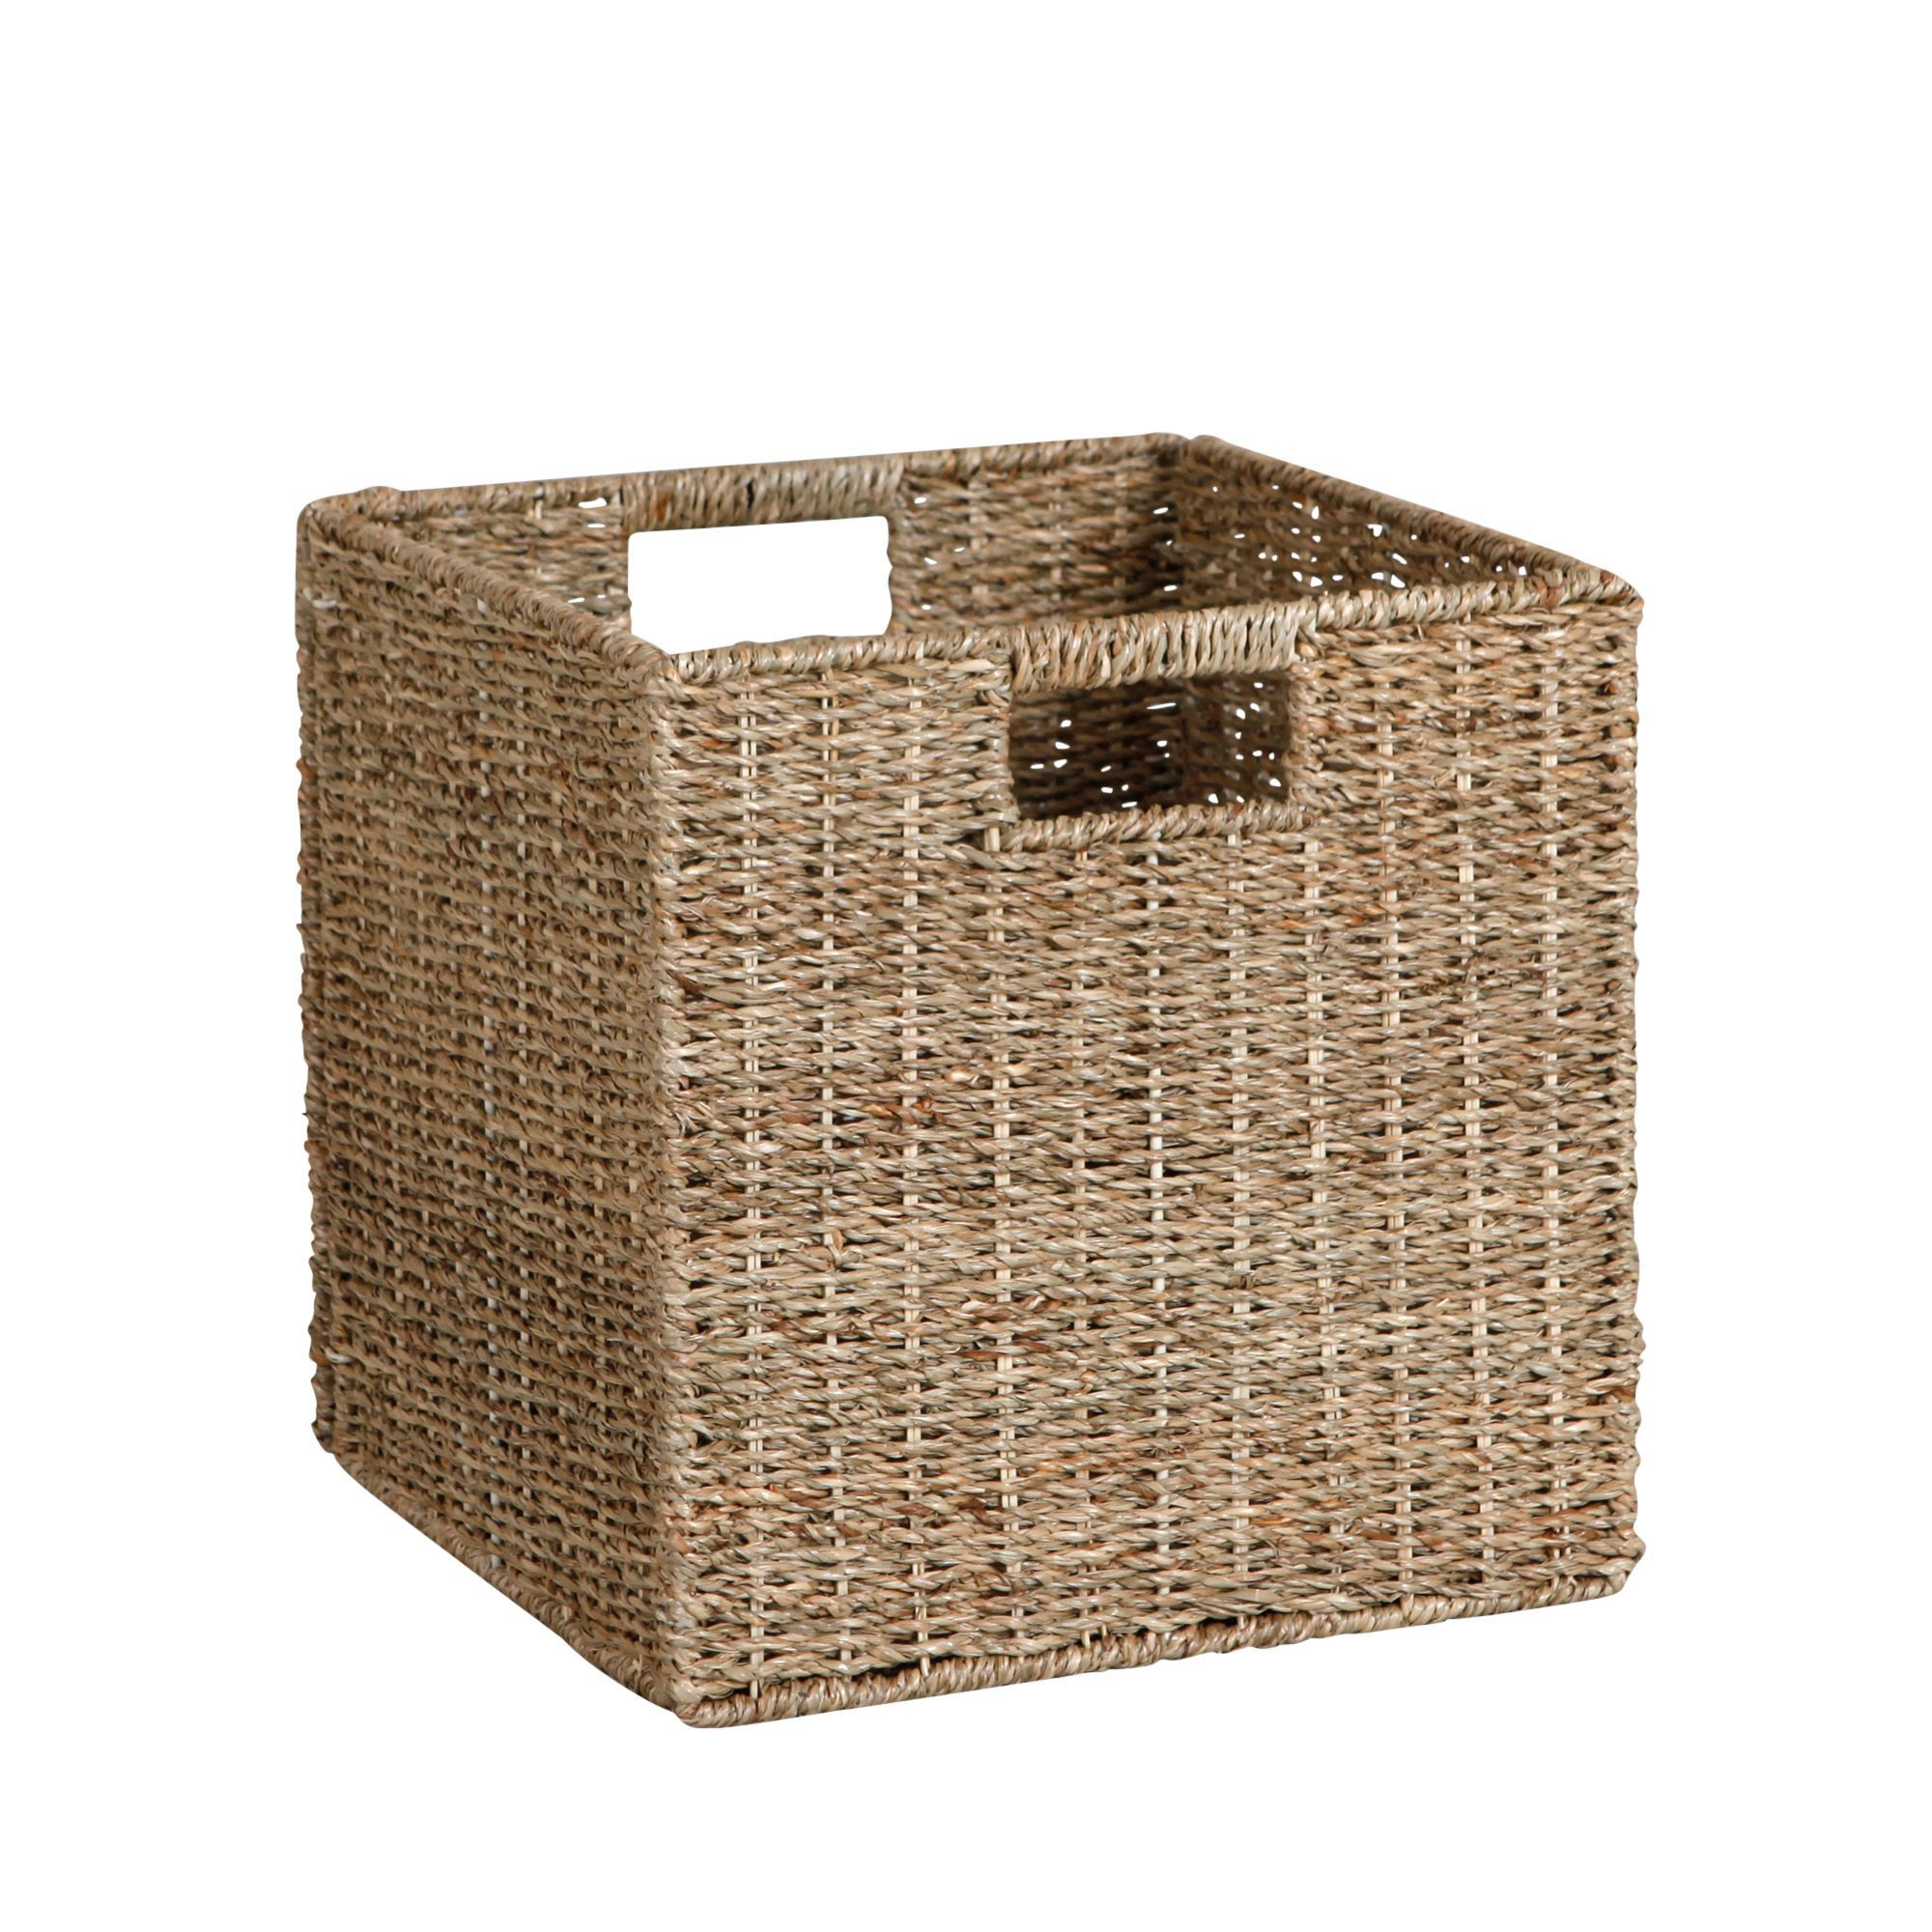 Wicker Basket Storage Cube : Cube storage baskets home ideas